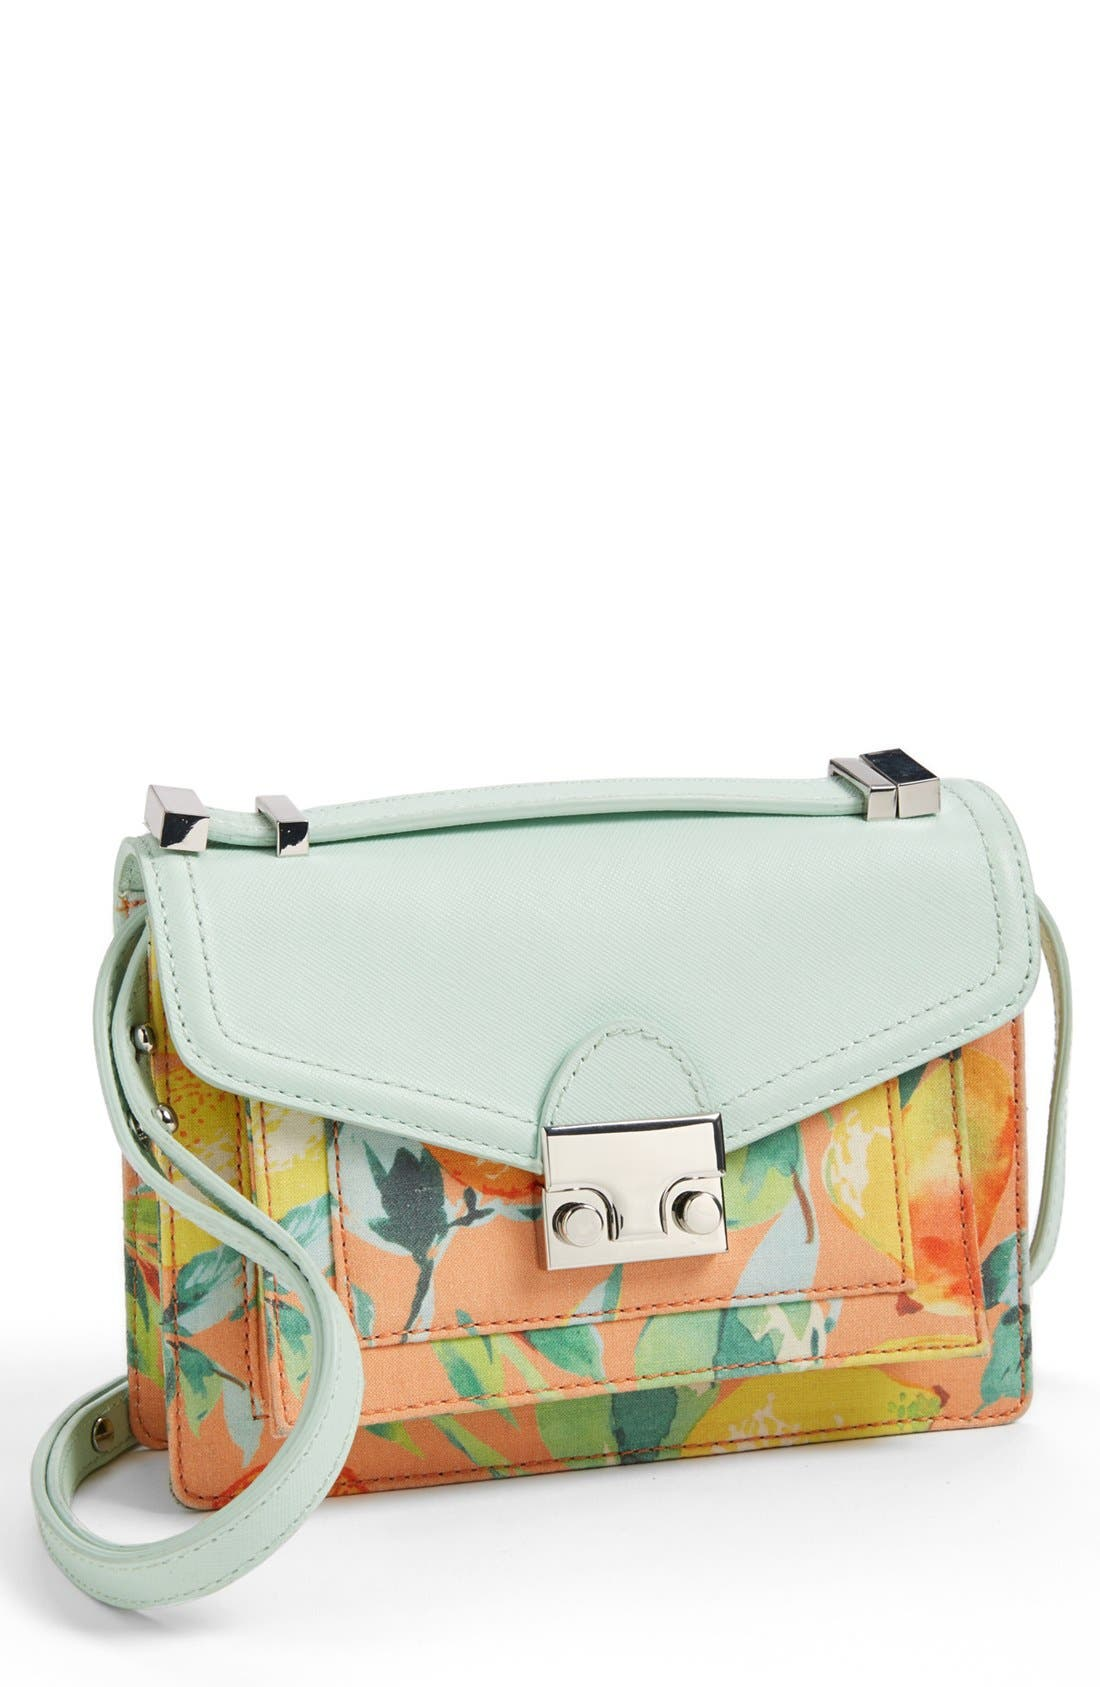 Main Image - Loeffler Randall 'Rider - Mini' Leather Crossbody Bag